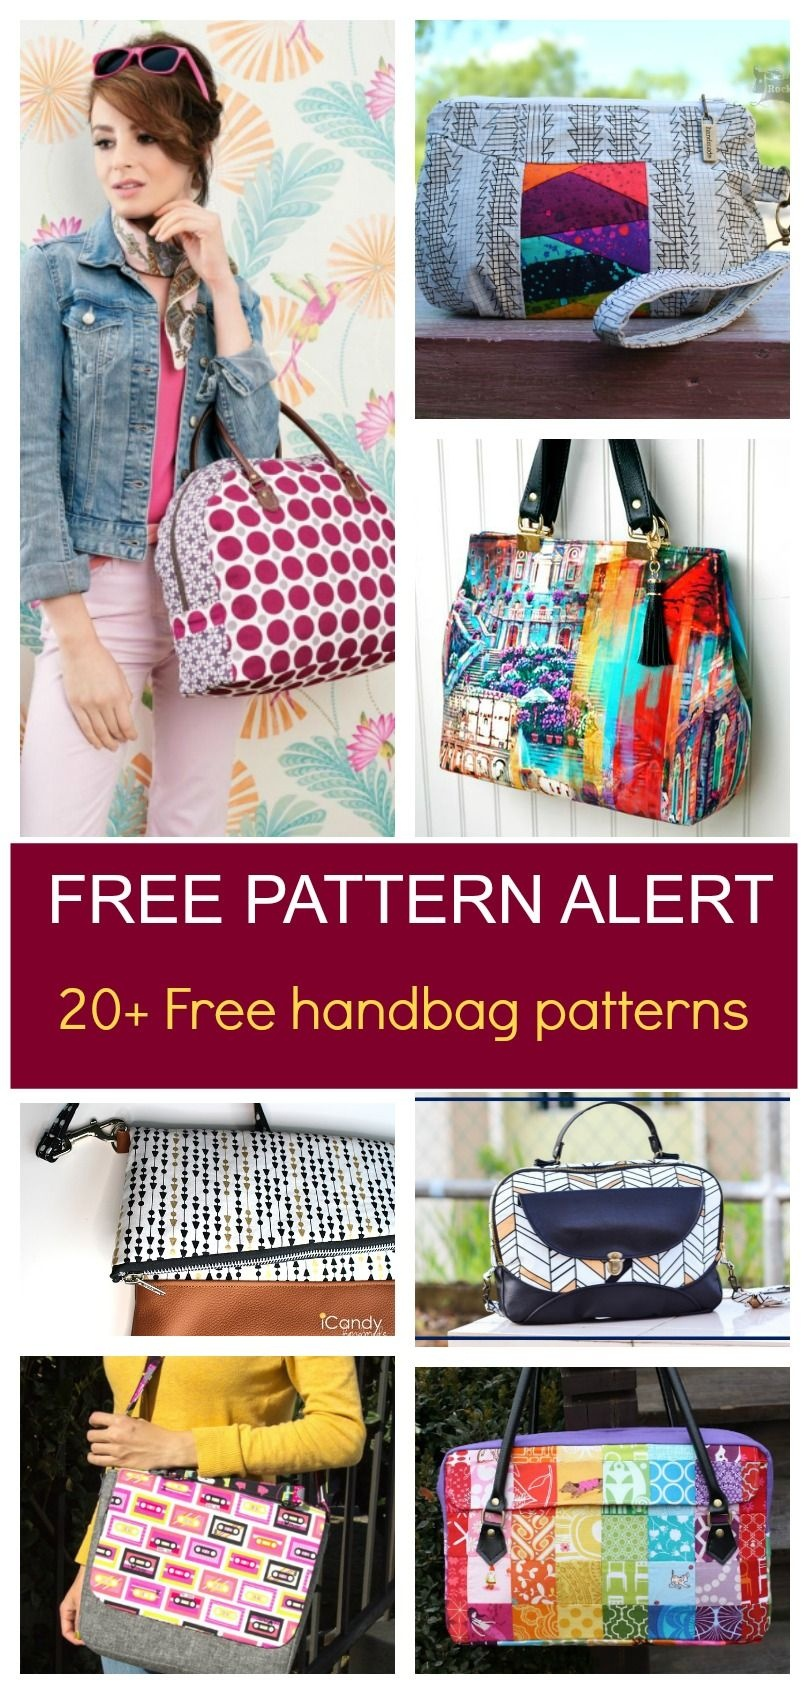 Pdf Sewing Patterns   On The Cutting Floor   Sewing Patterns Free - Handbag Patterns Free Printable